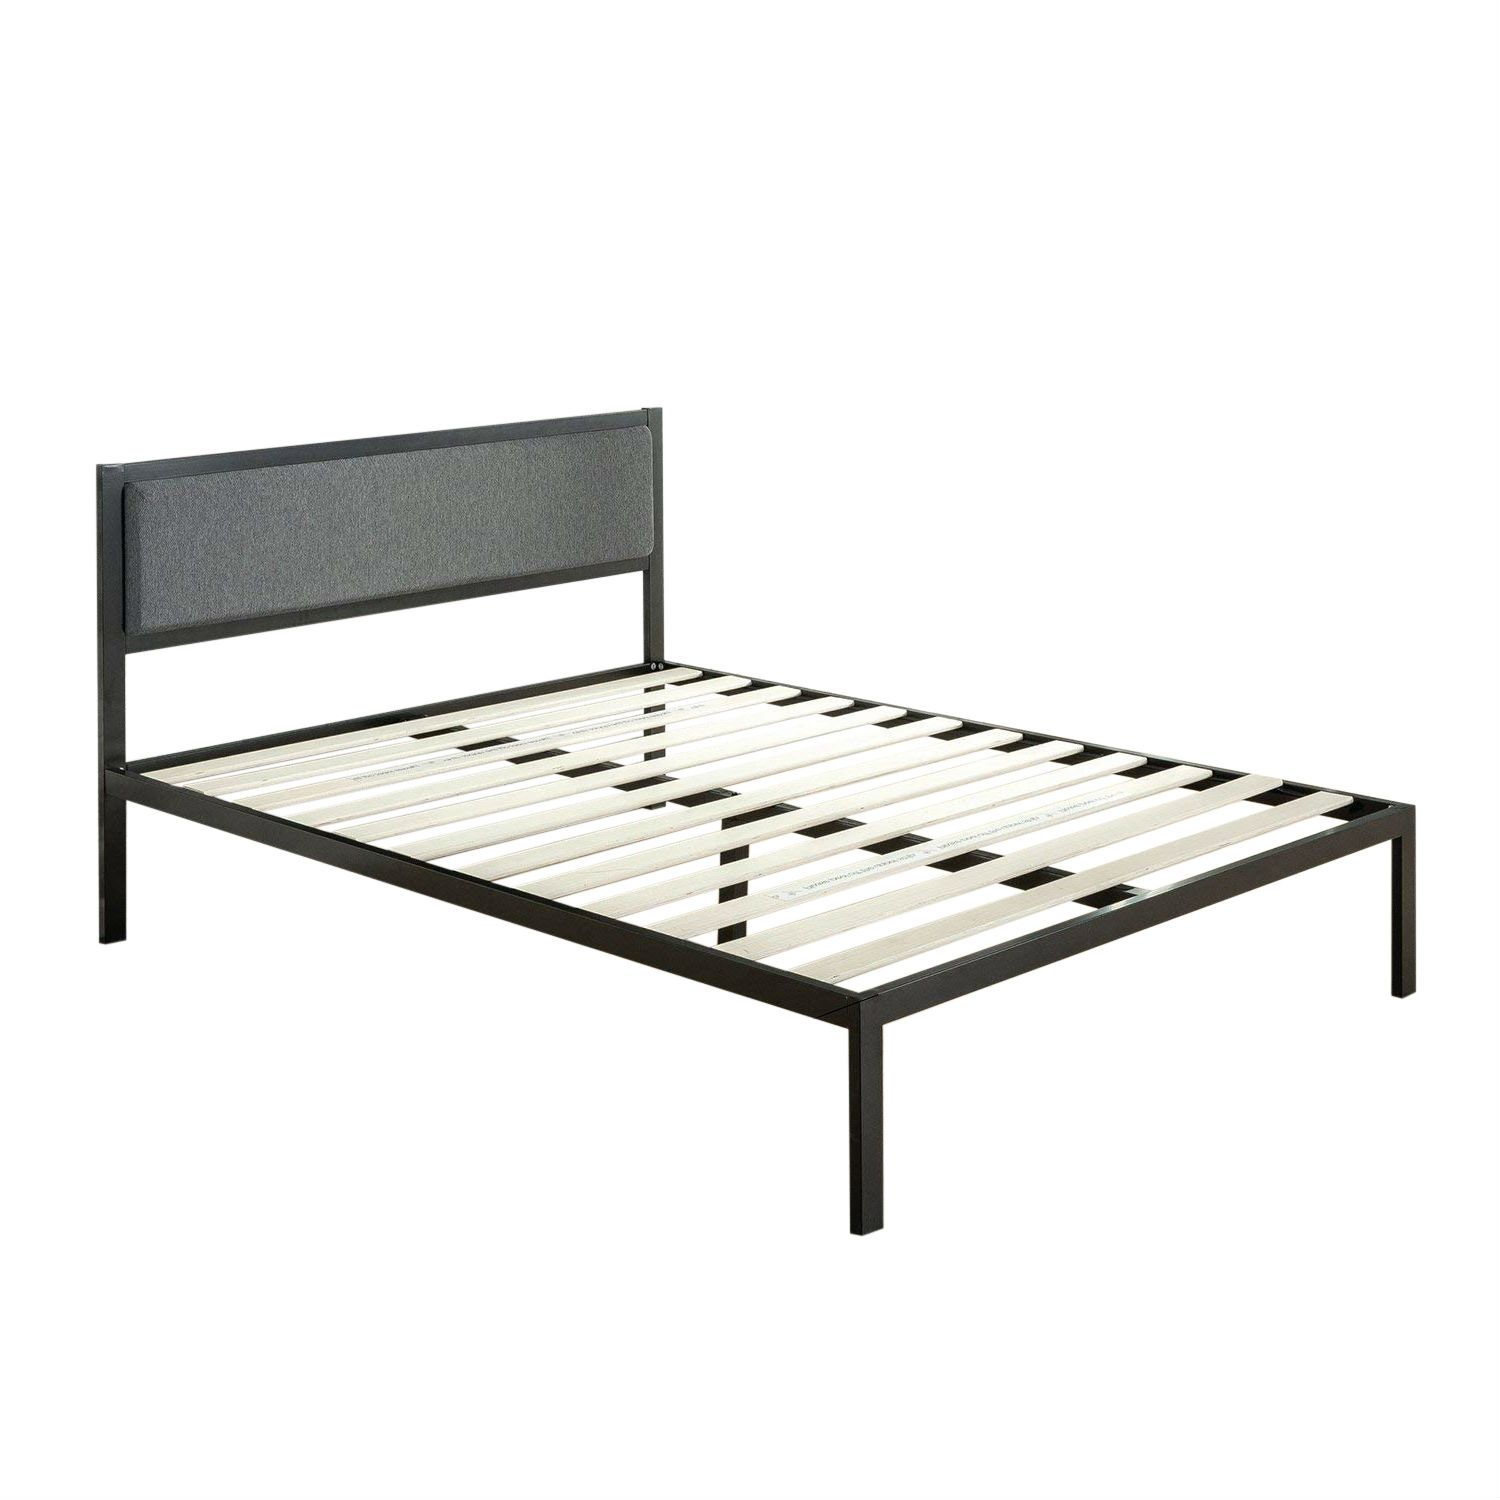 King Size Metal Platform Bed Frame With Wood Slats And Upholstered Headboard Fastfurnishings Com